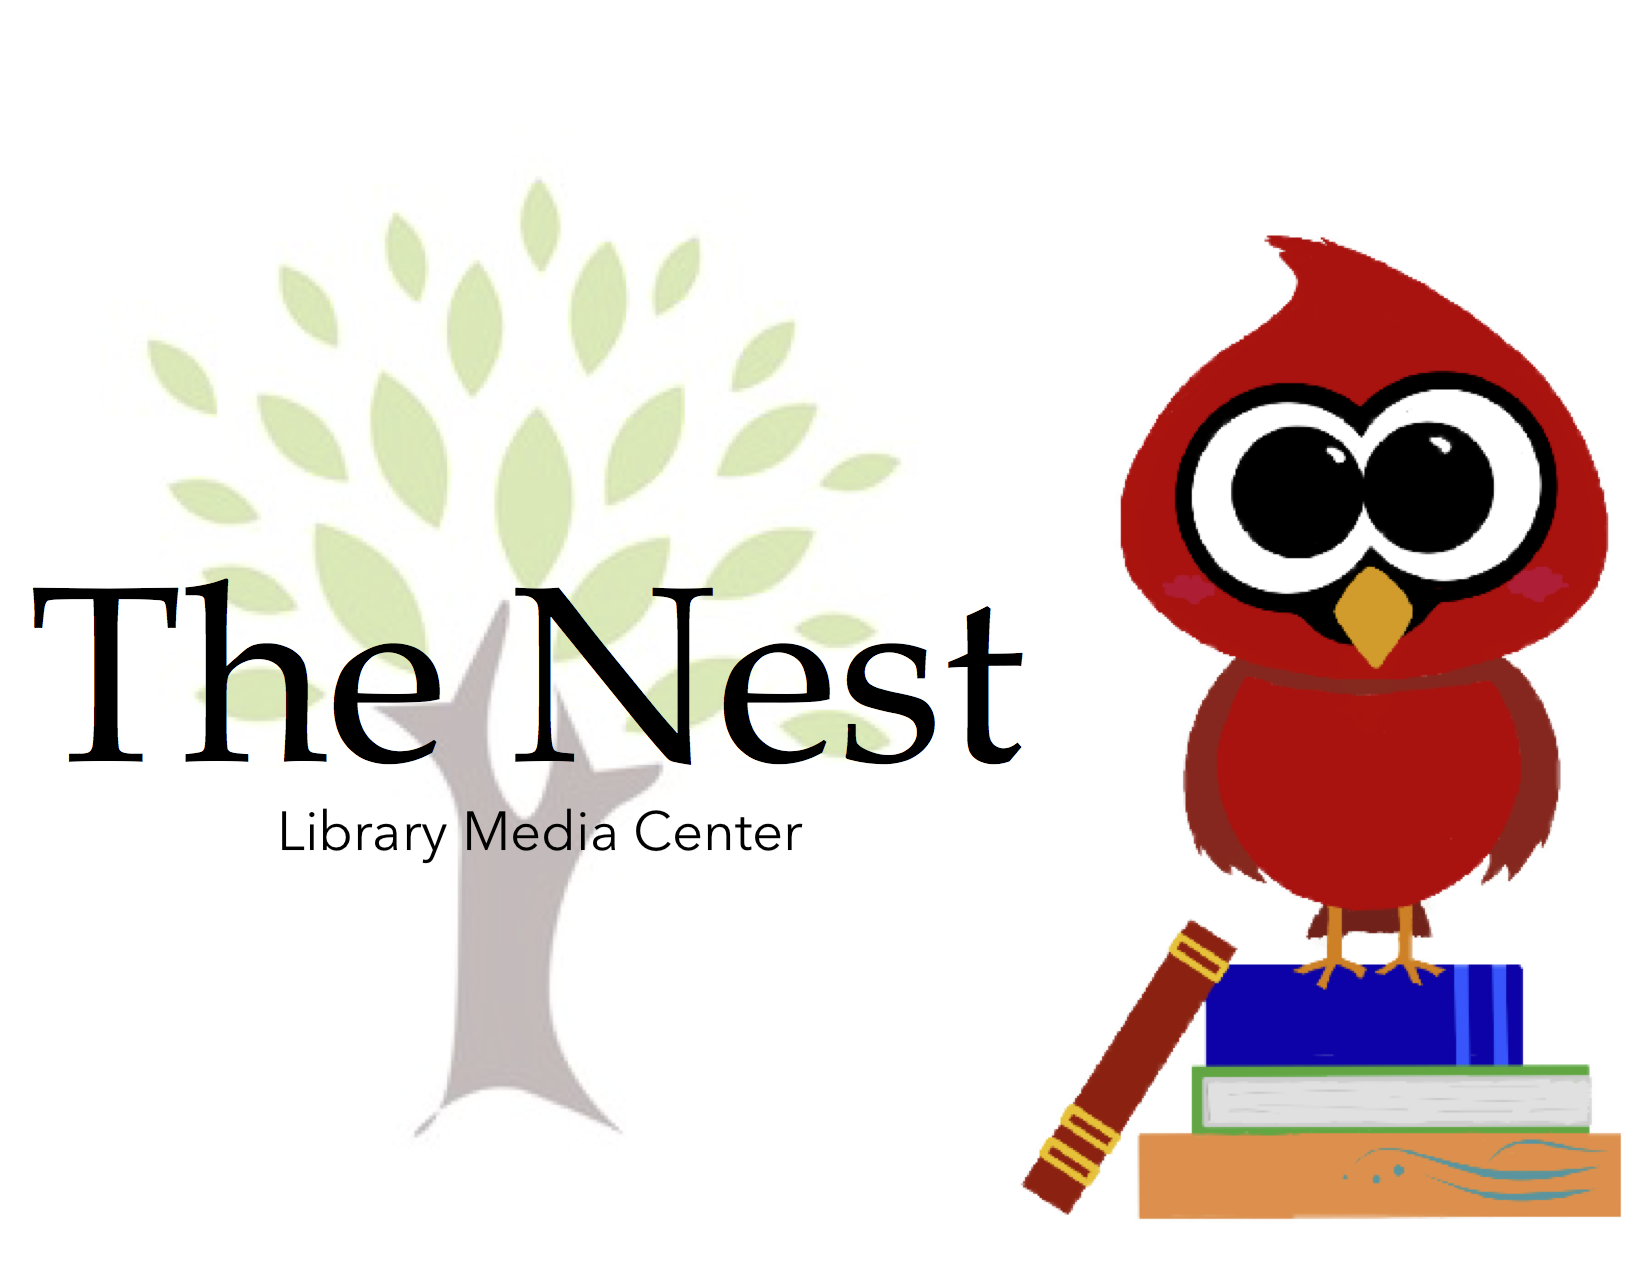 The Nest Library Media Center logo.